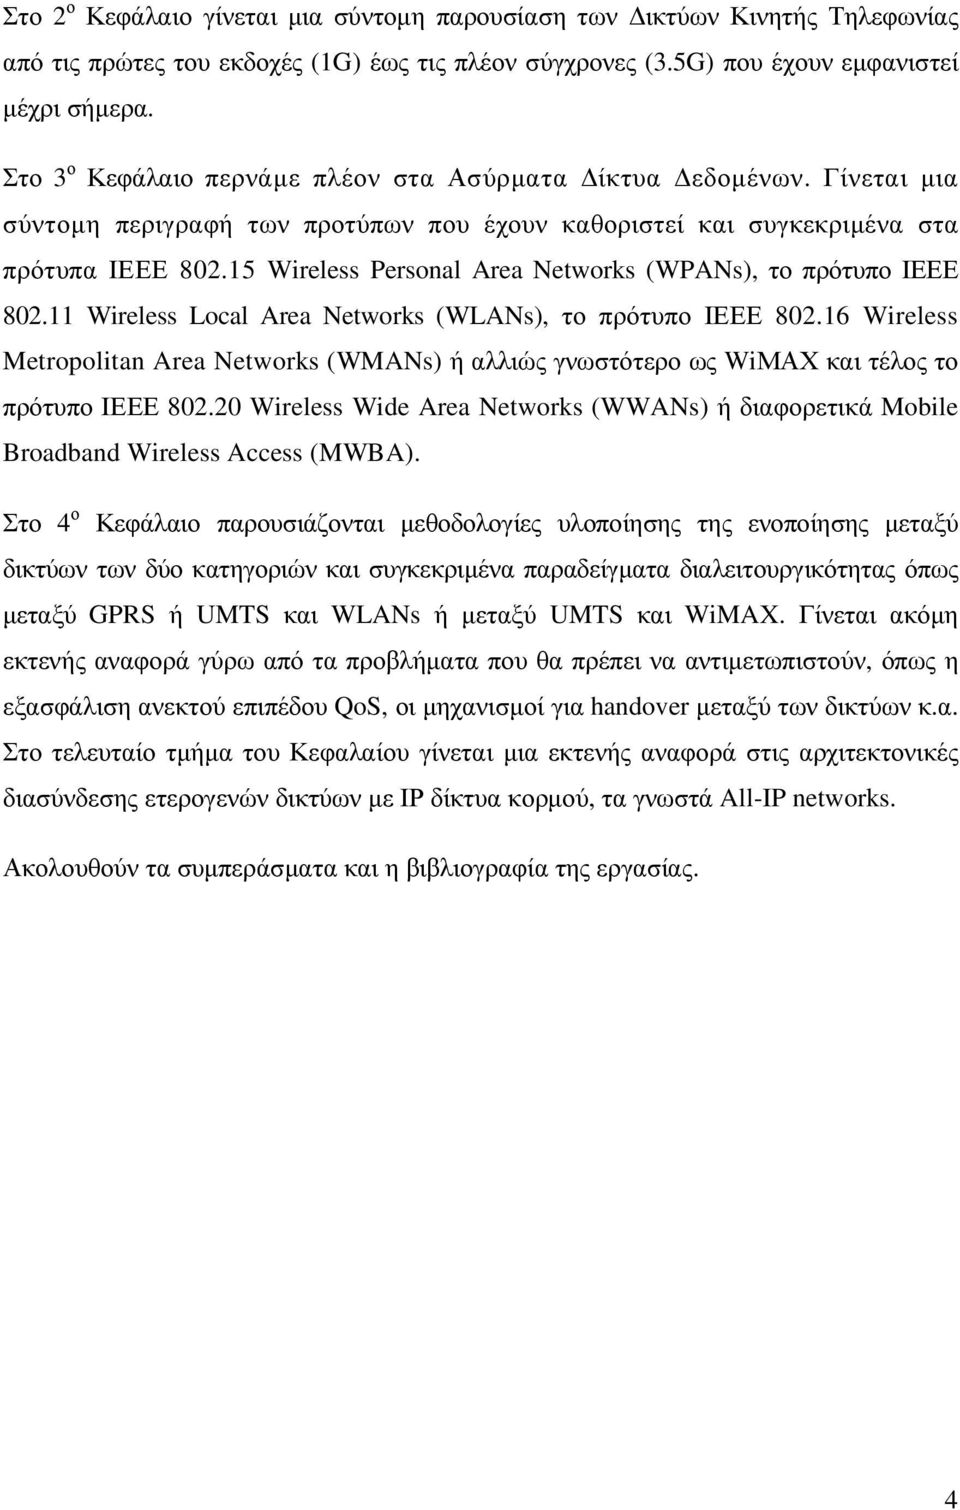 15 Wireless Personal Area Networks (WPANs), το πρότυπο ΙΕΕΕ 802.11 Wireless Local Area Networks (WLANs), το πρότυπο ΙΕΕΕ 802.